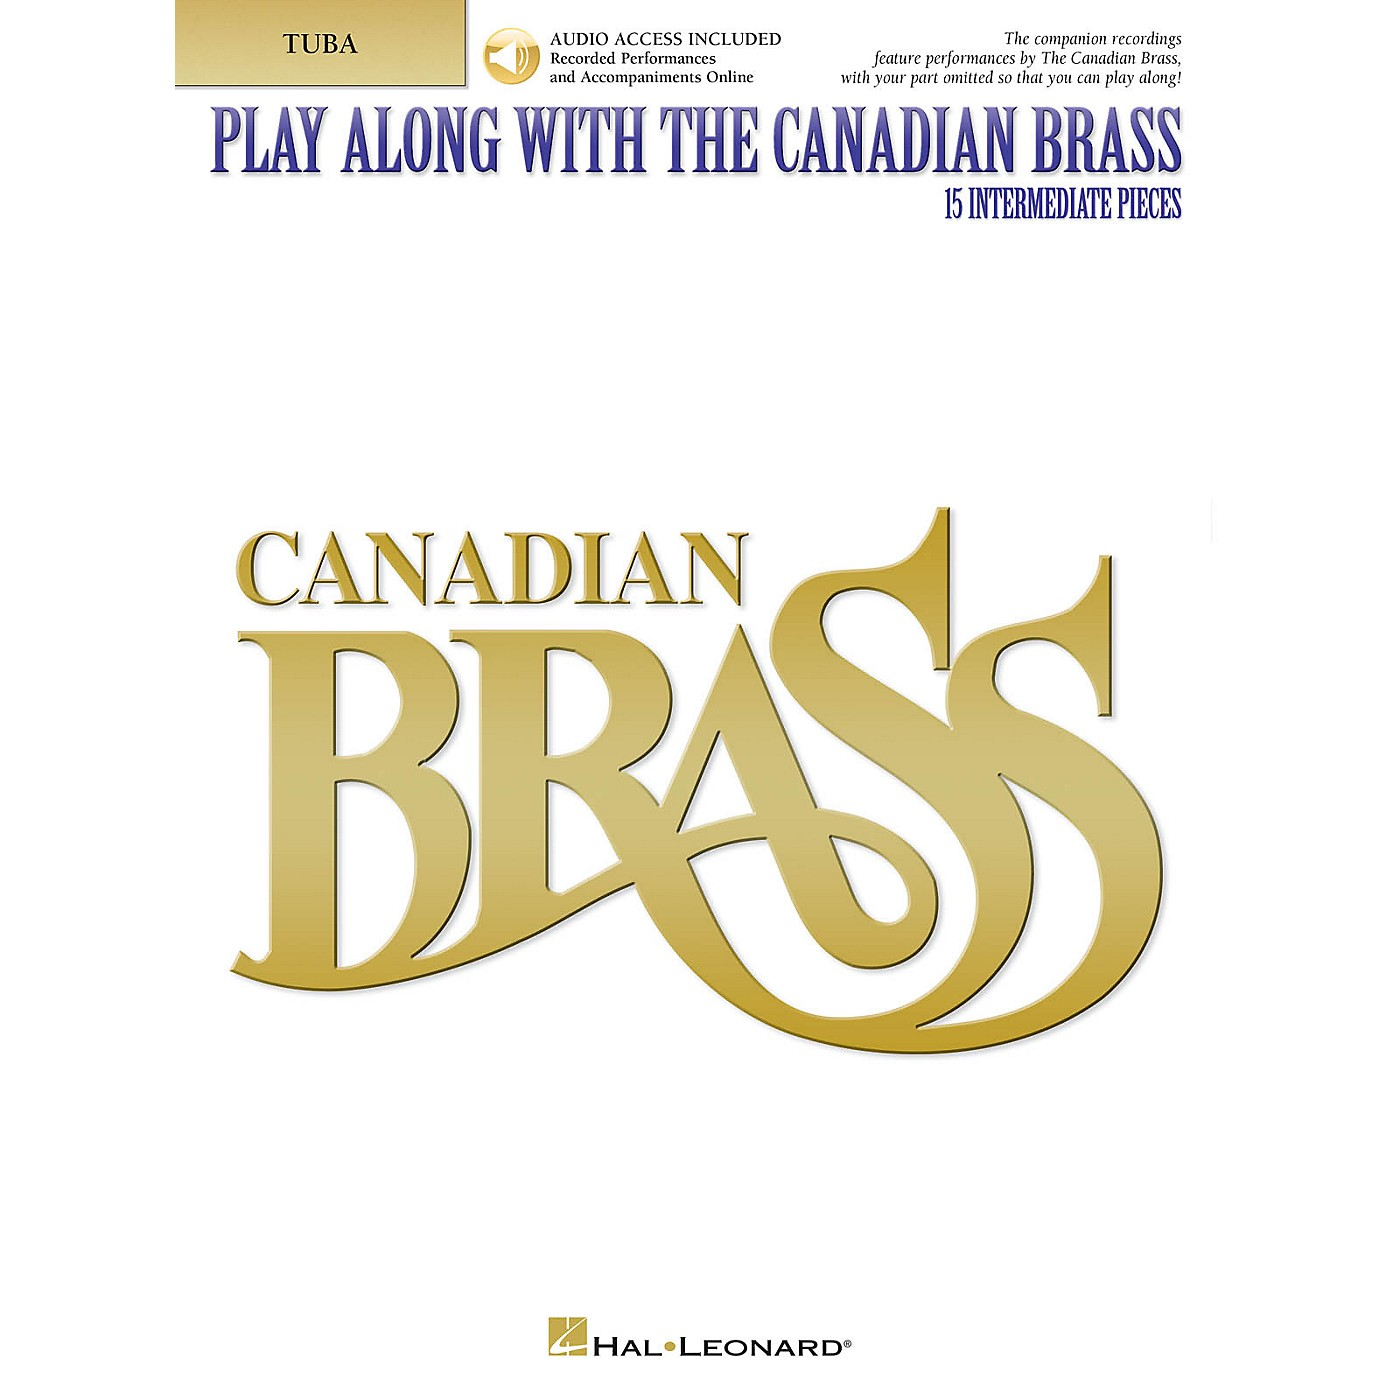 Canadian Brass Play Along with The Canadian Brass - Tuba (B.C.) Brass Ensemble Book/Audio Online by The Canadian Brass thumbnail